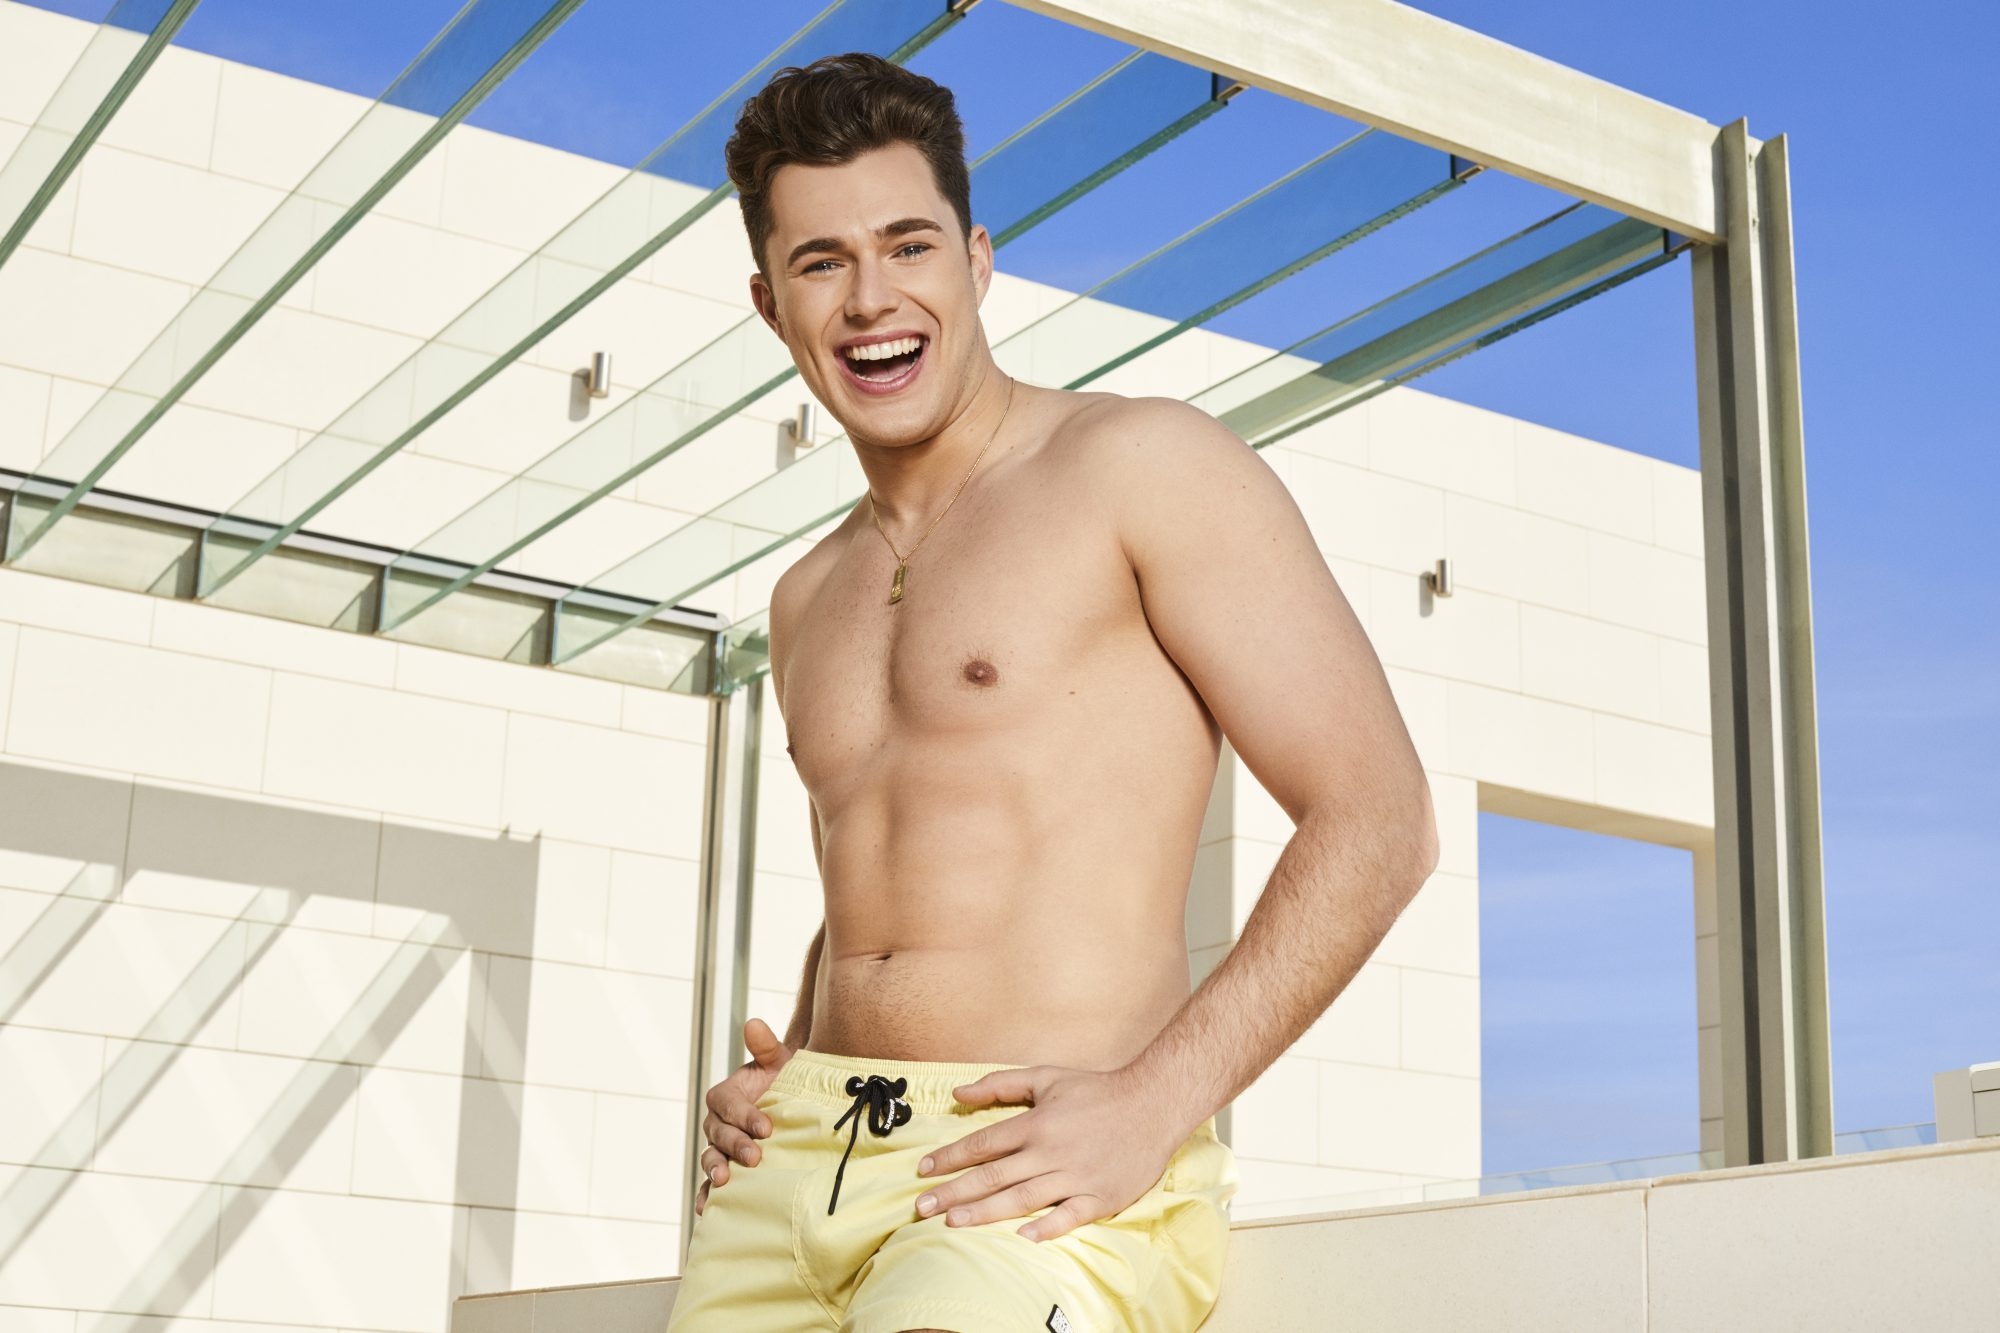 Love Island contestant Curtis Pritchard, 23, is a ballroom and latin dancer from Shropshire.